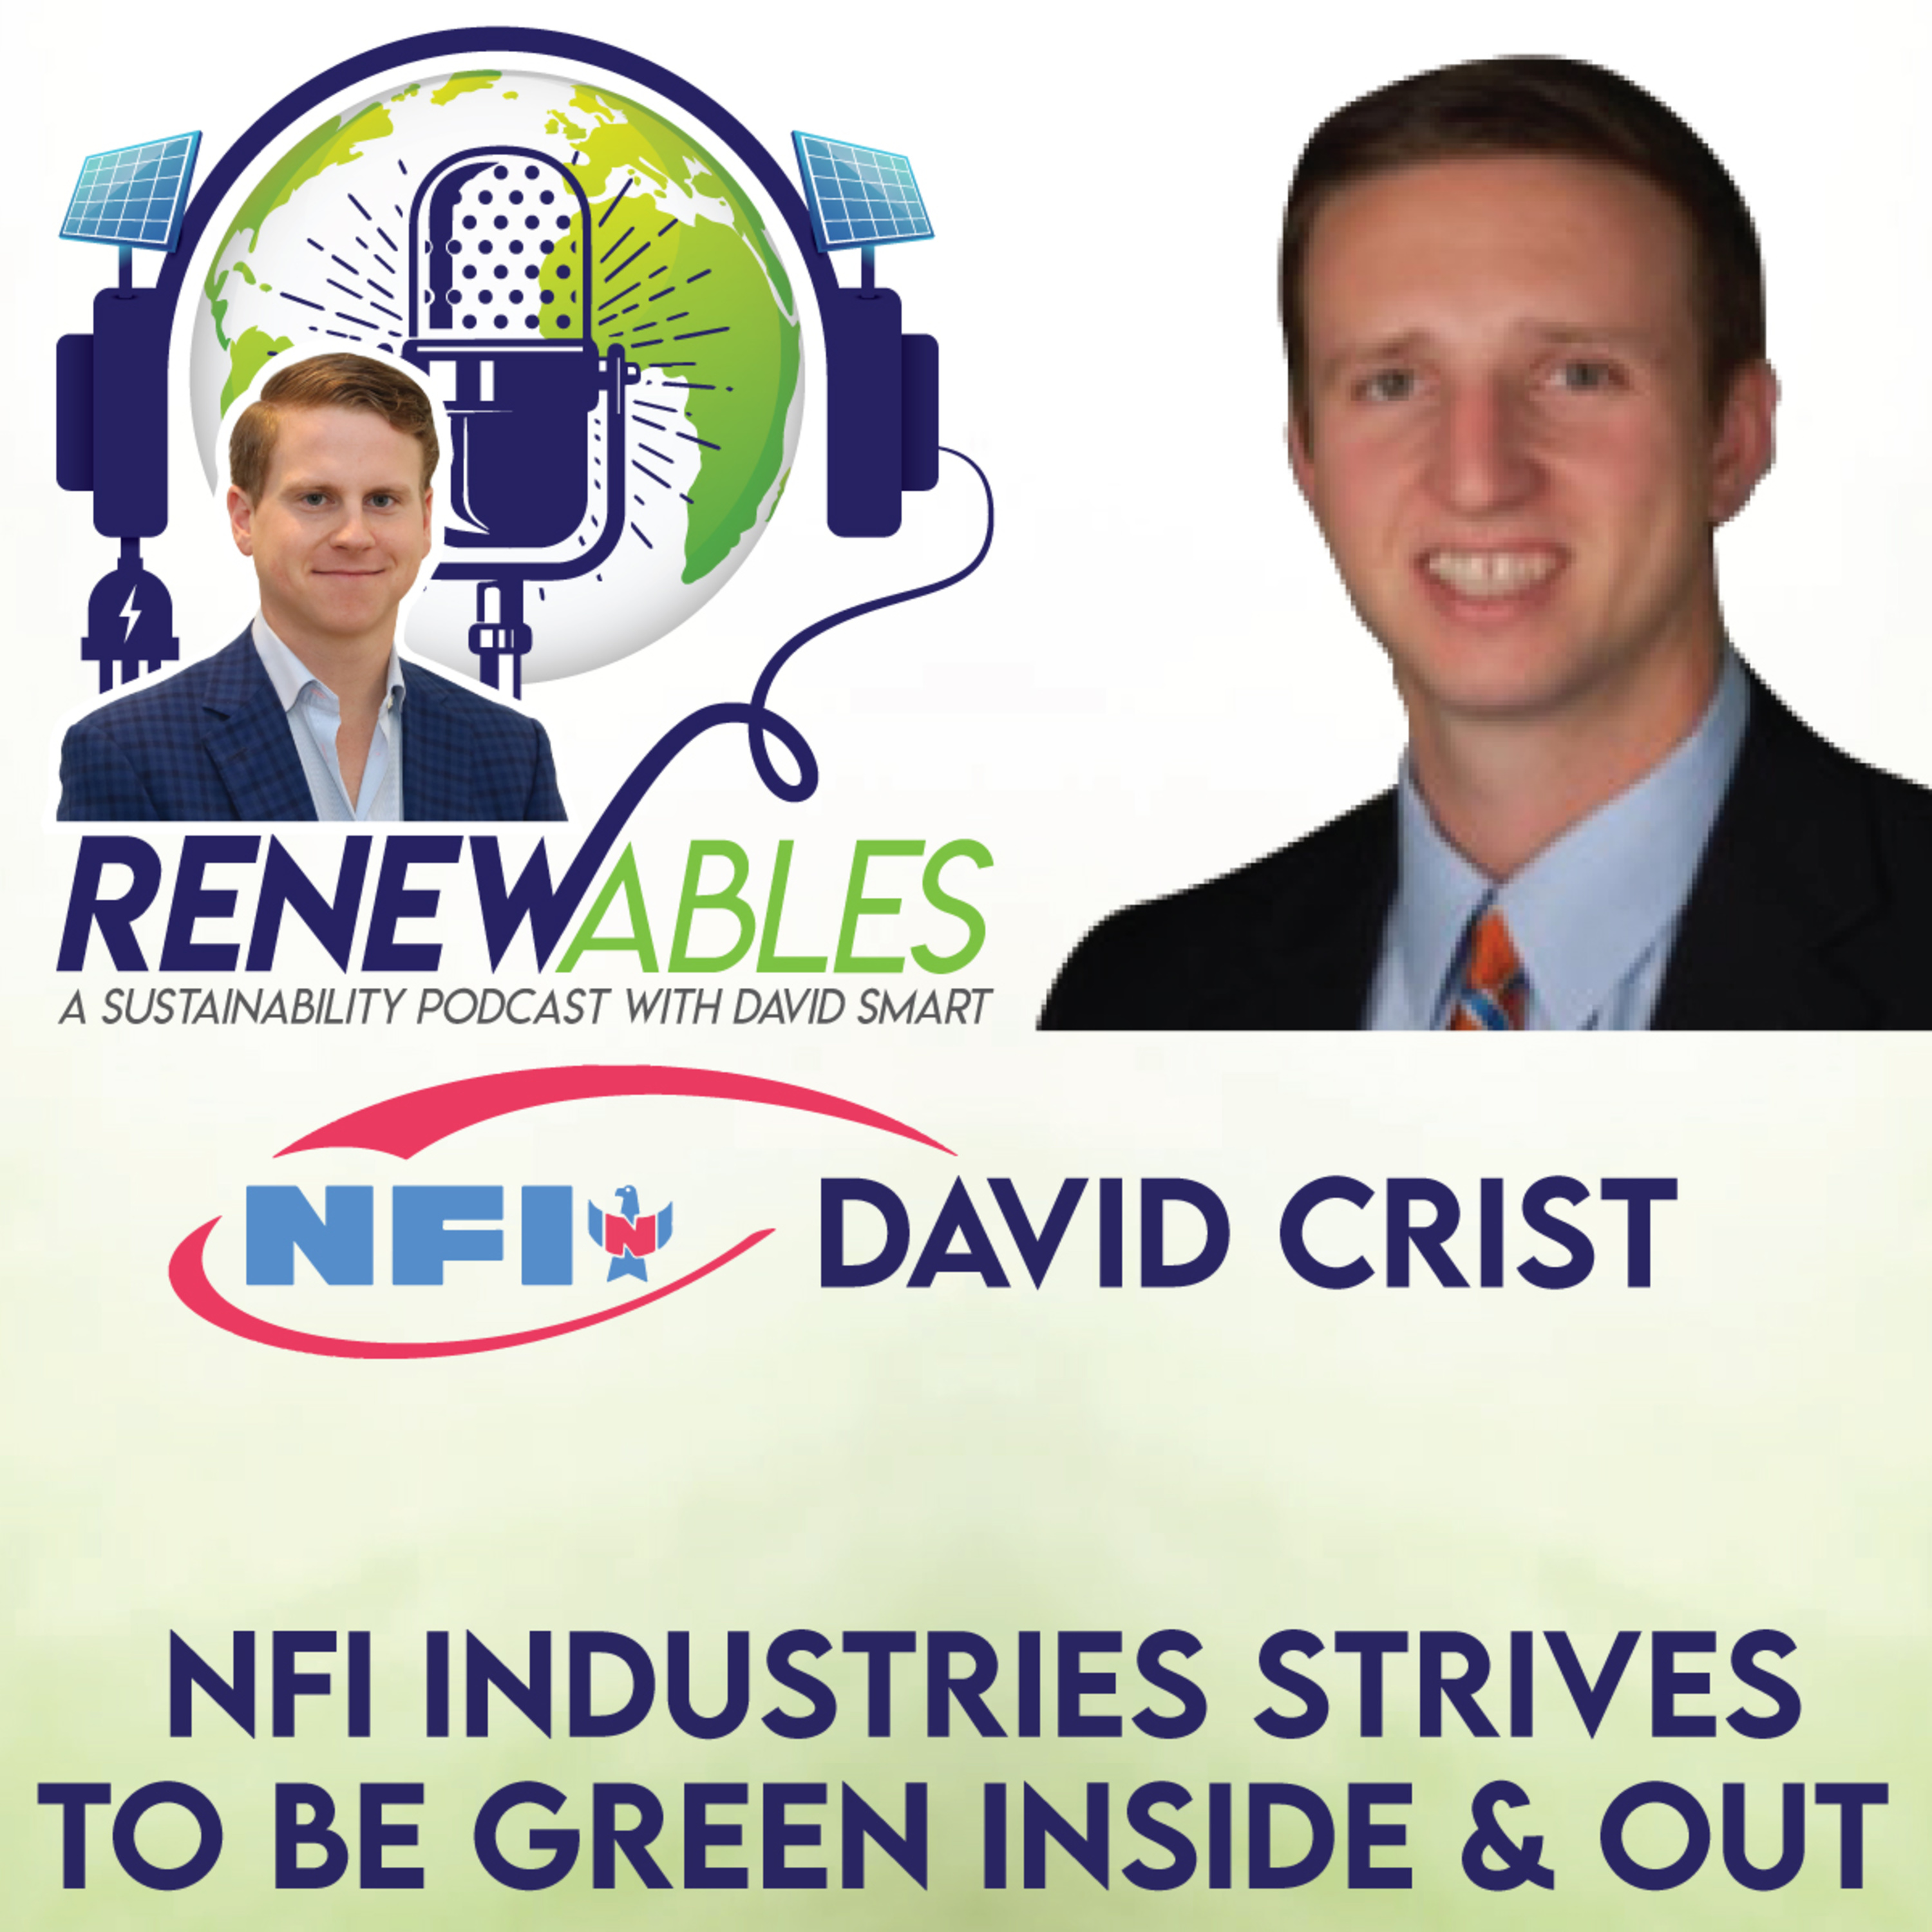 RENEWables Episode 23: NFI Industries Strives to Be Green Inside & Out